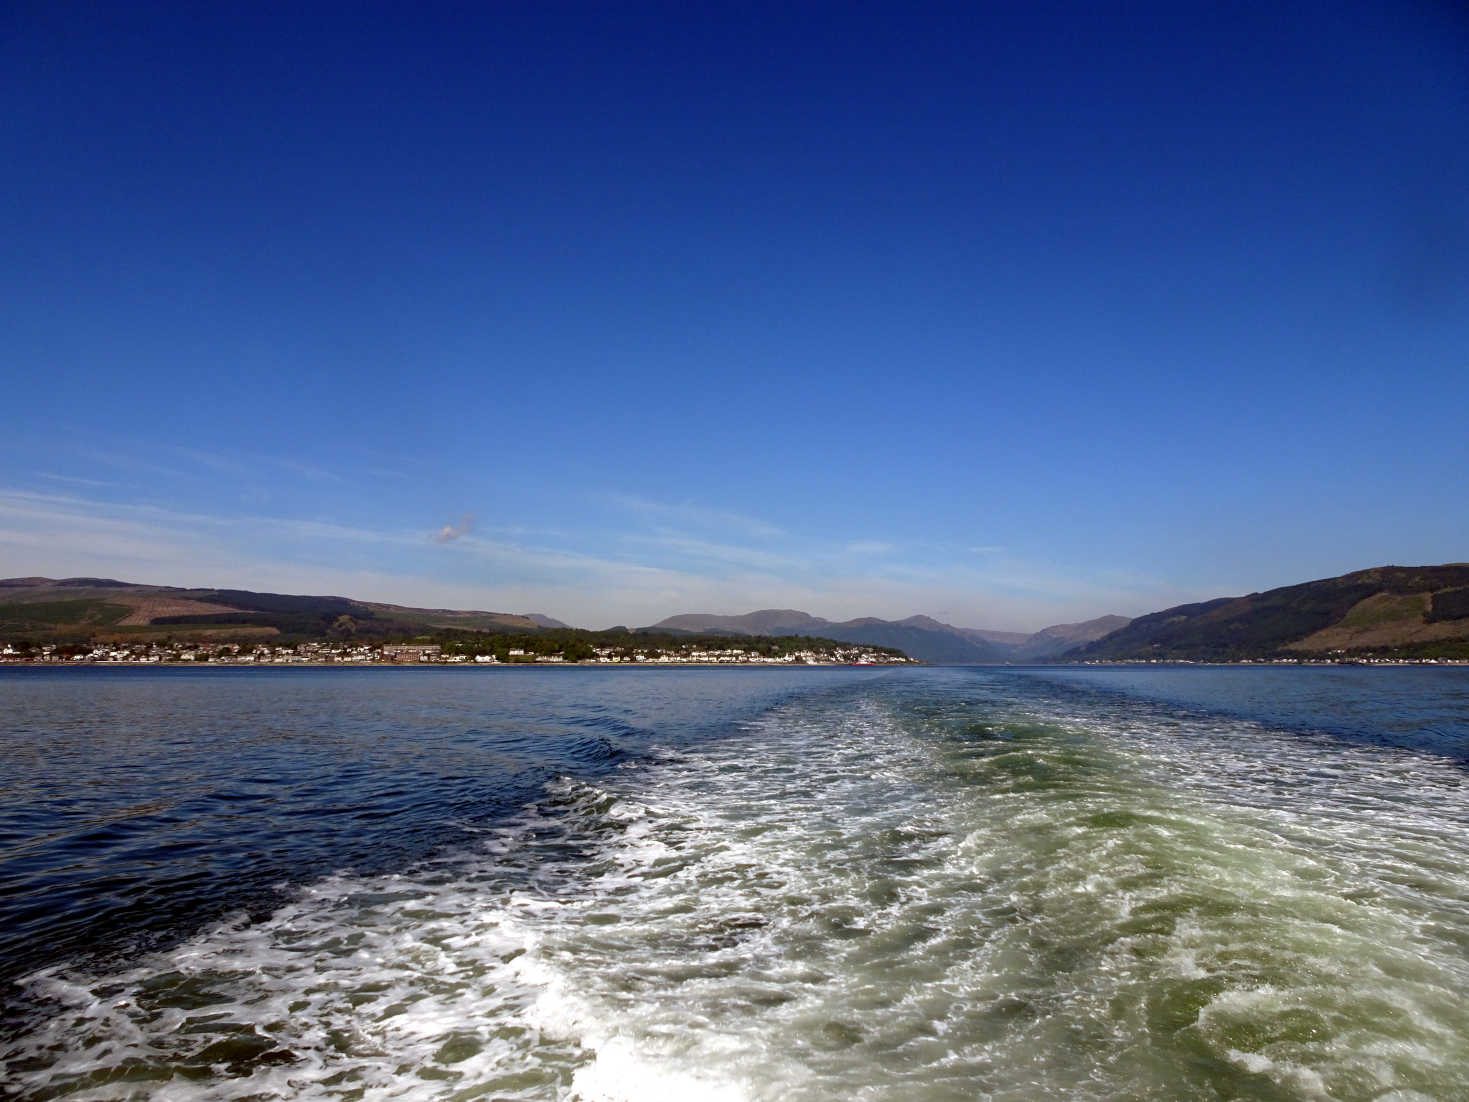 leaving Dunoon in the sunshine